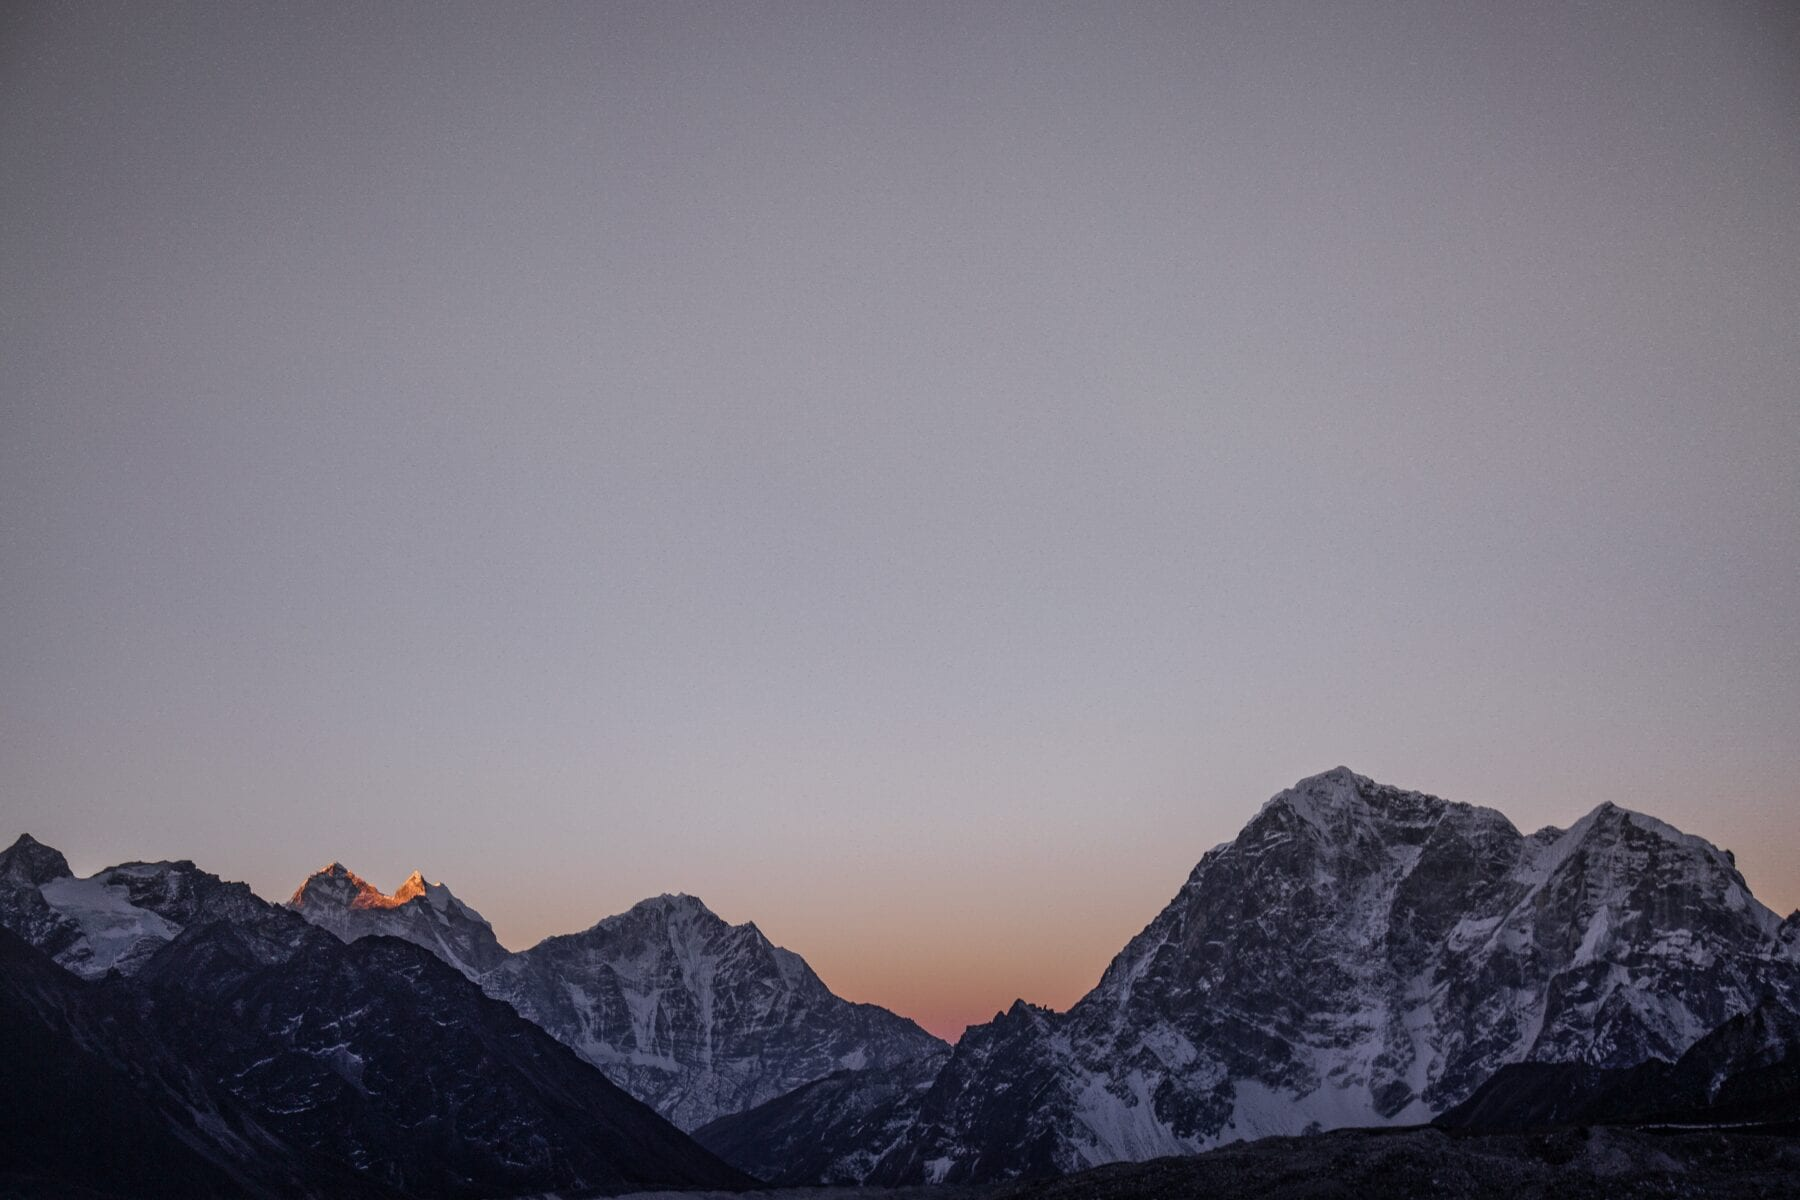 Mount Everest zonsondergang